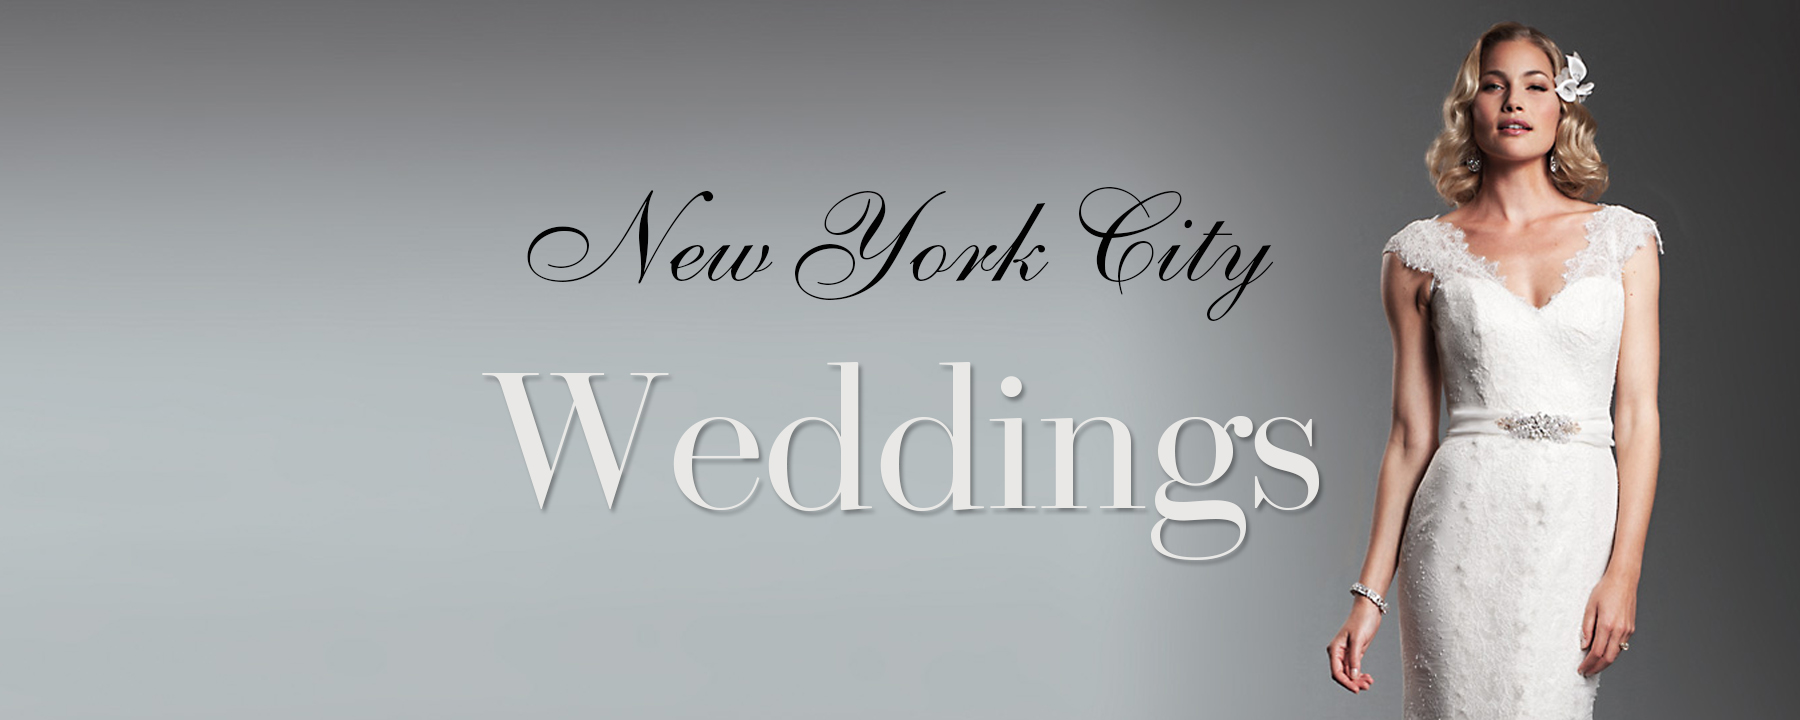 NYC Weddings